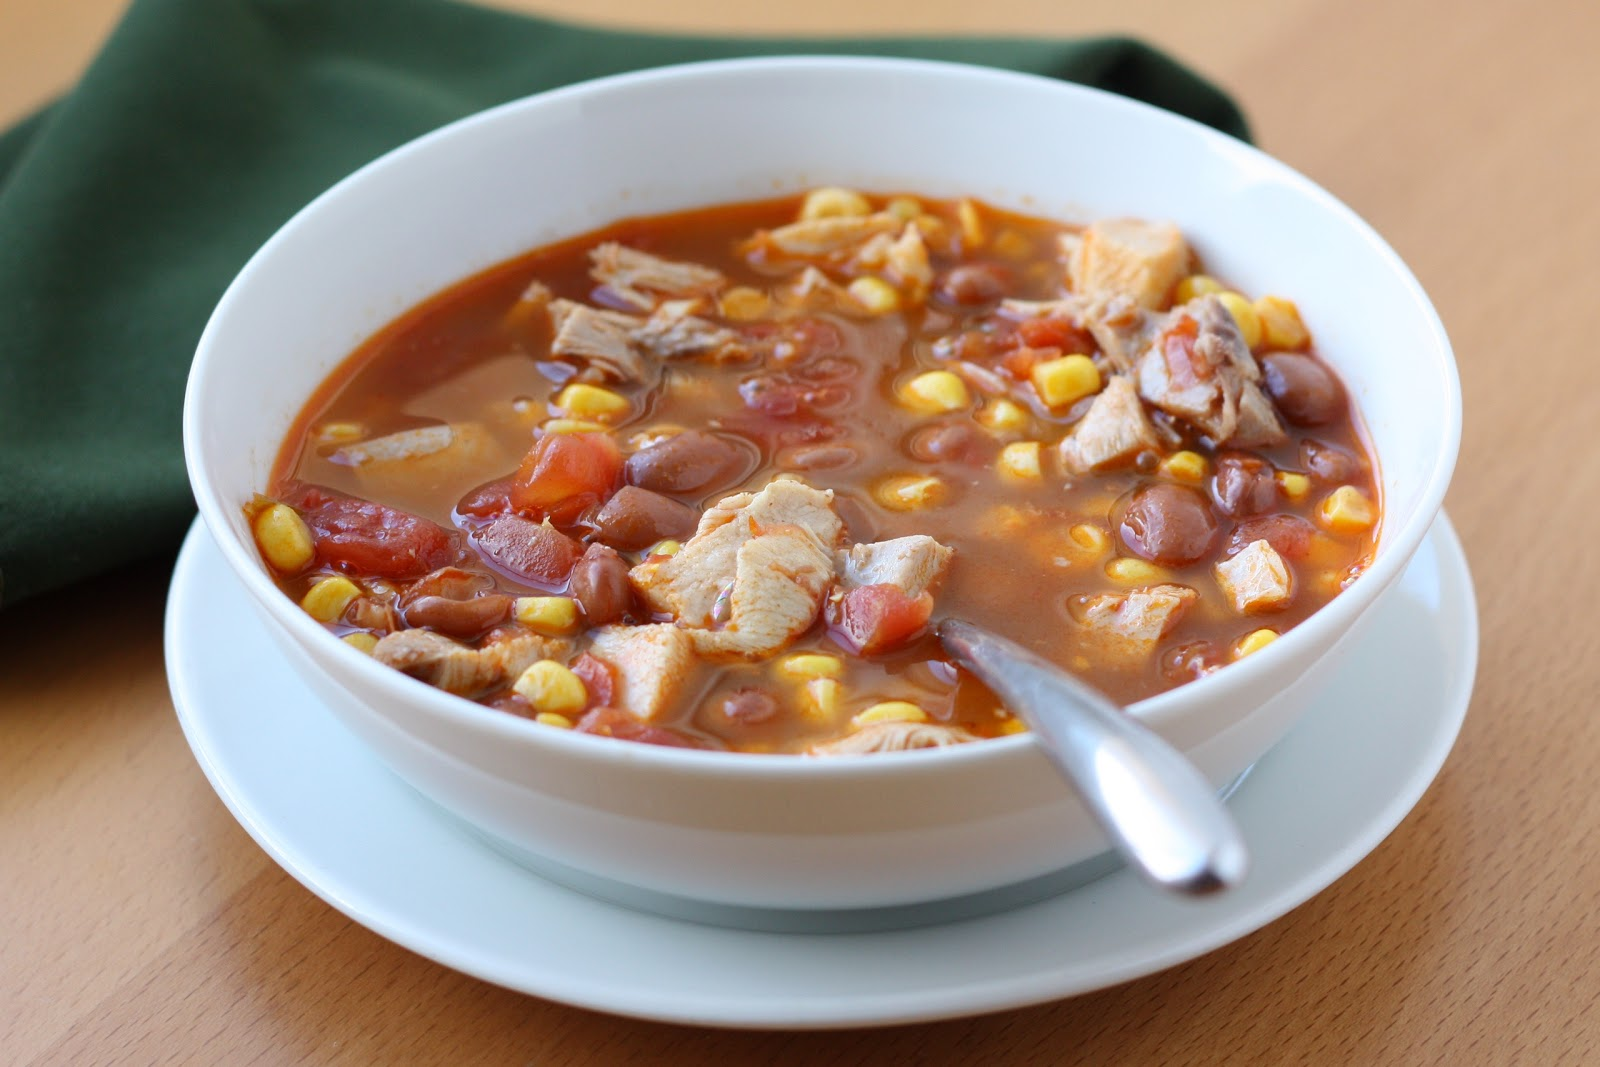 Barefeet In The Kitchen: Ranch Style Chicken and Bean Soup